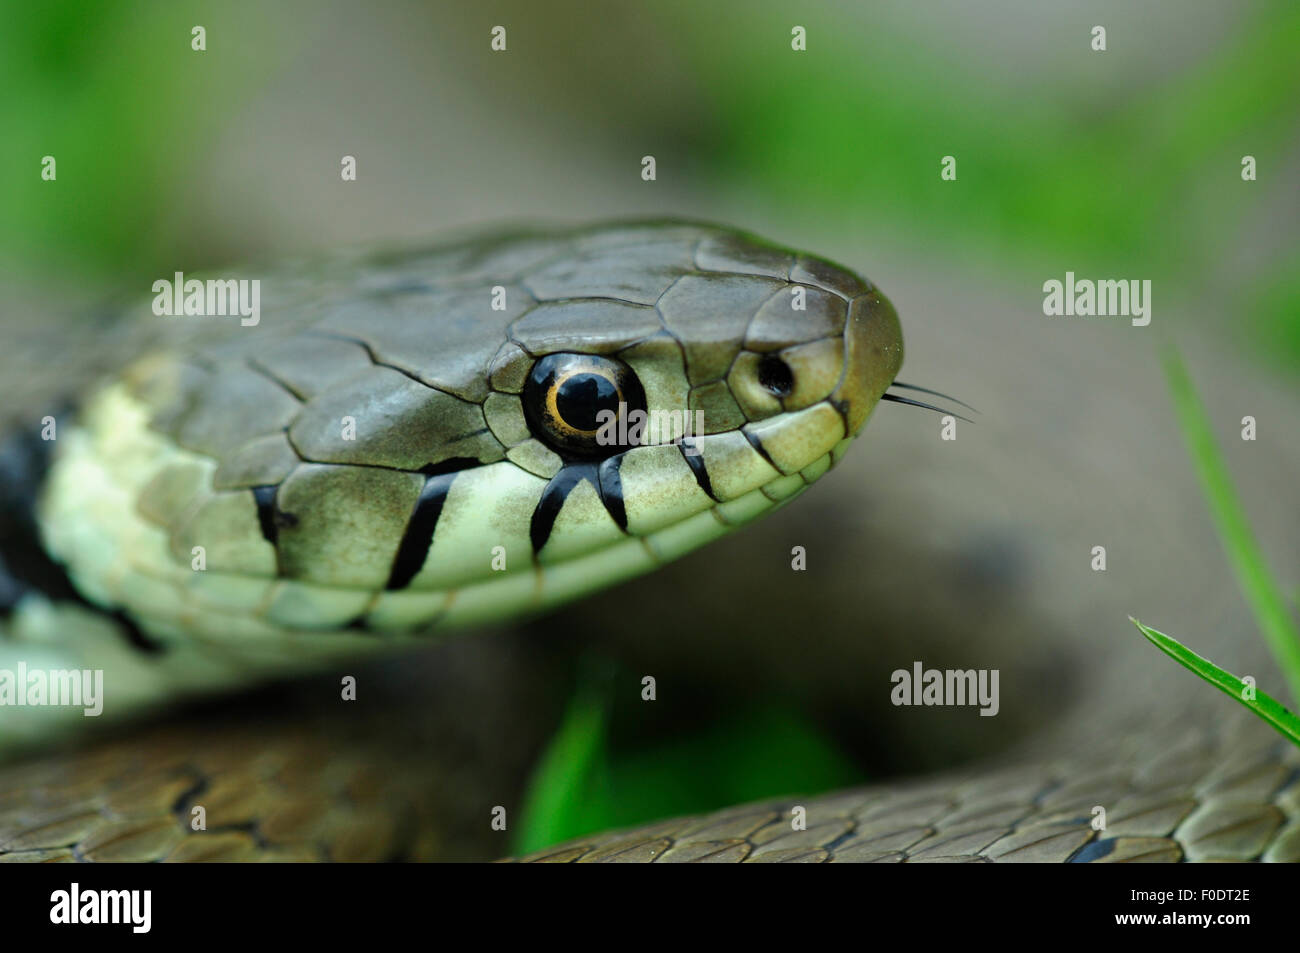 The head of a grass snake with its tongue just poking out UK - Stock Image